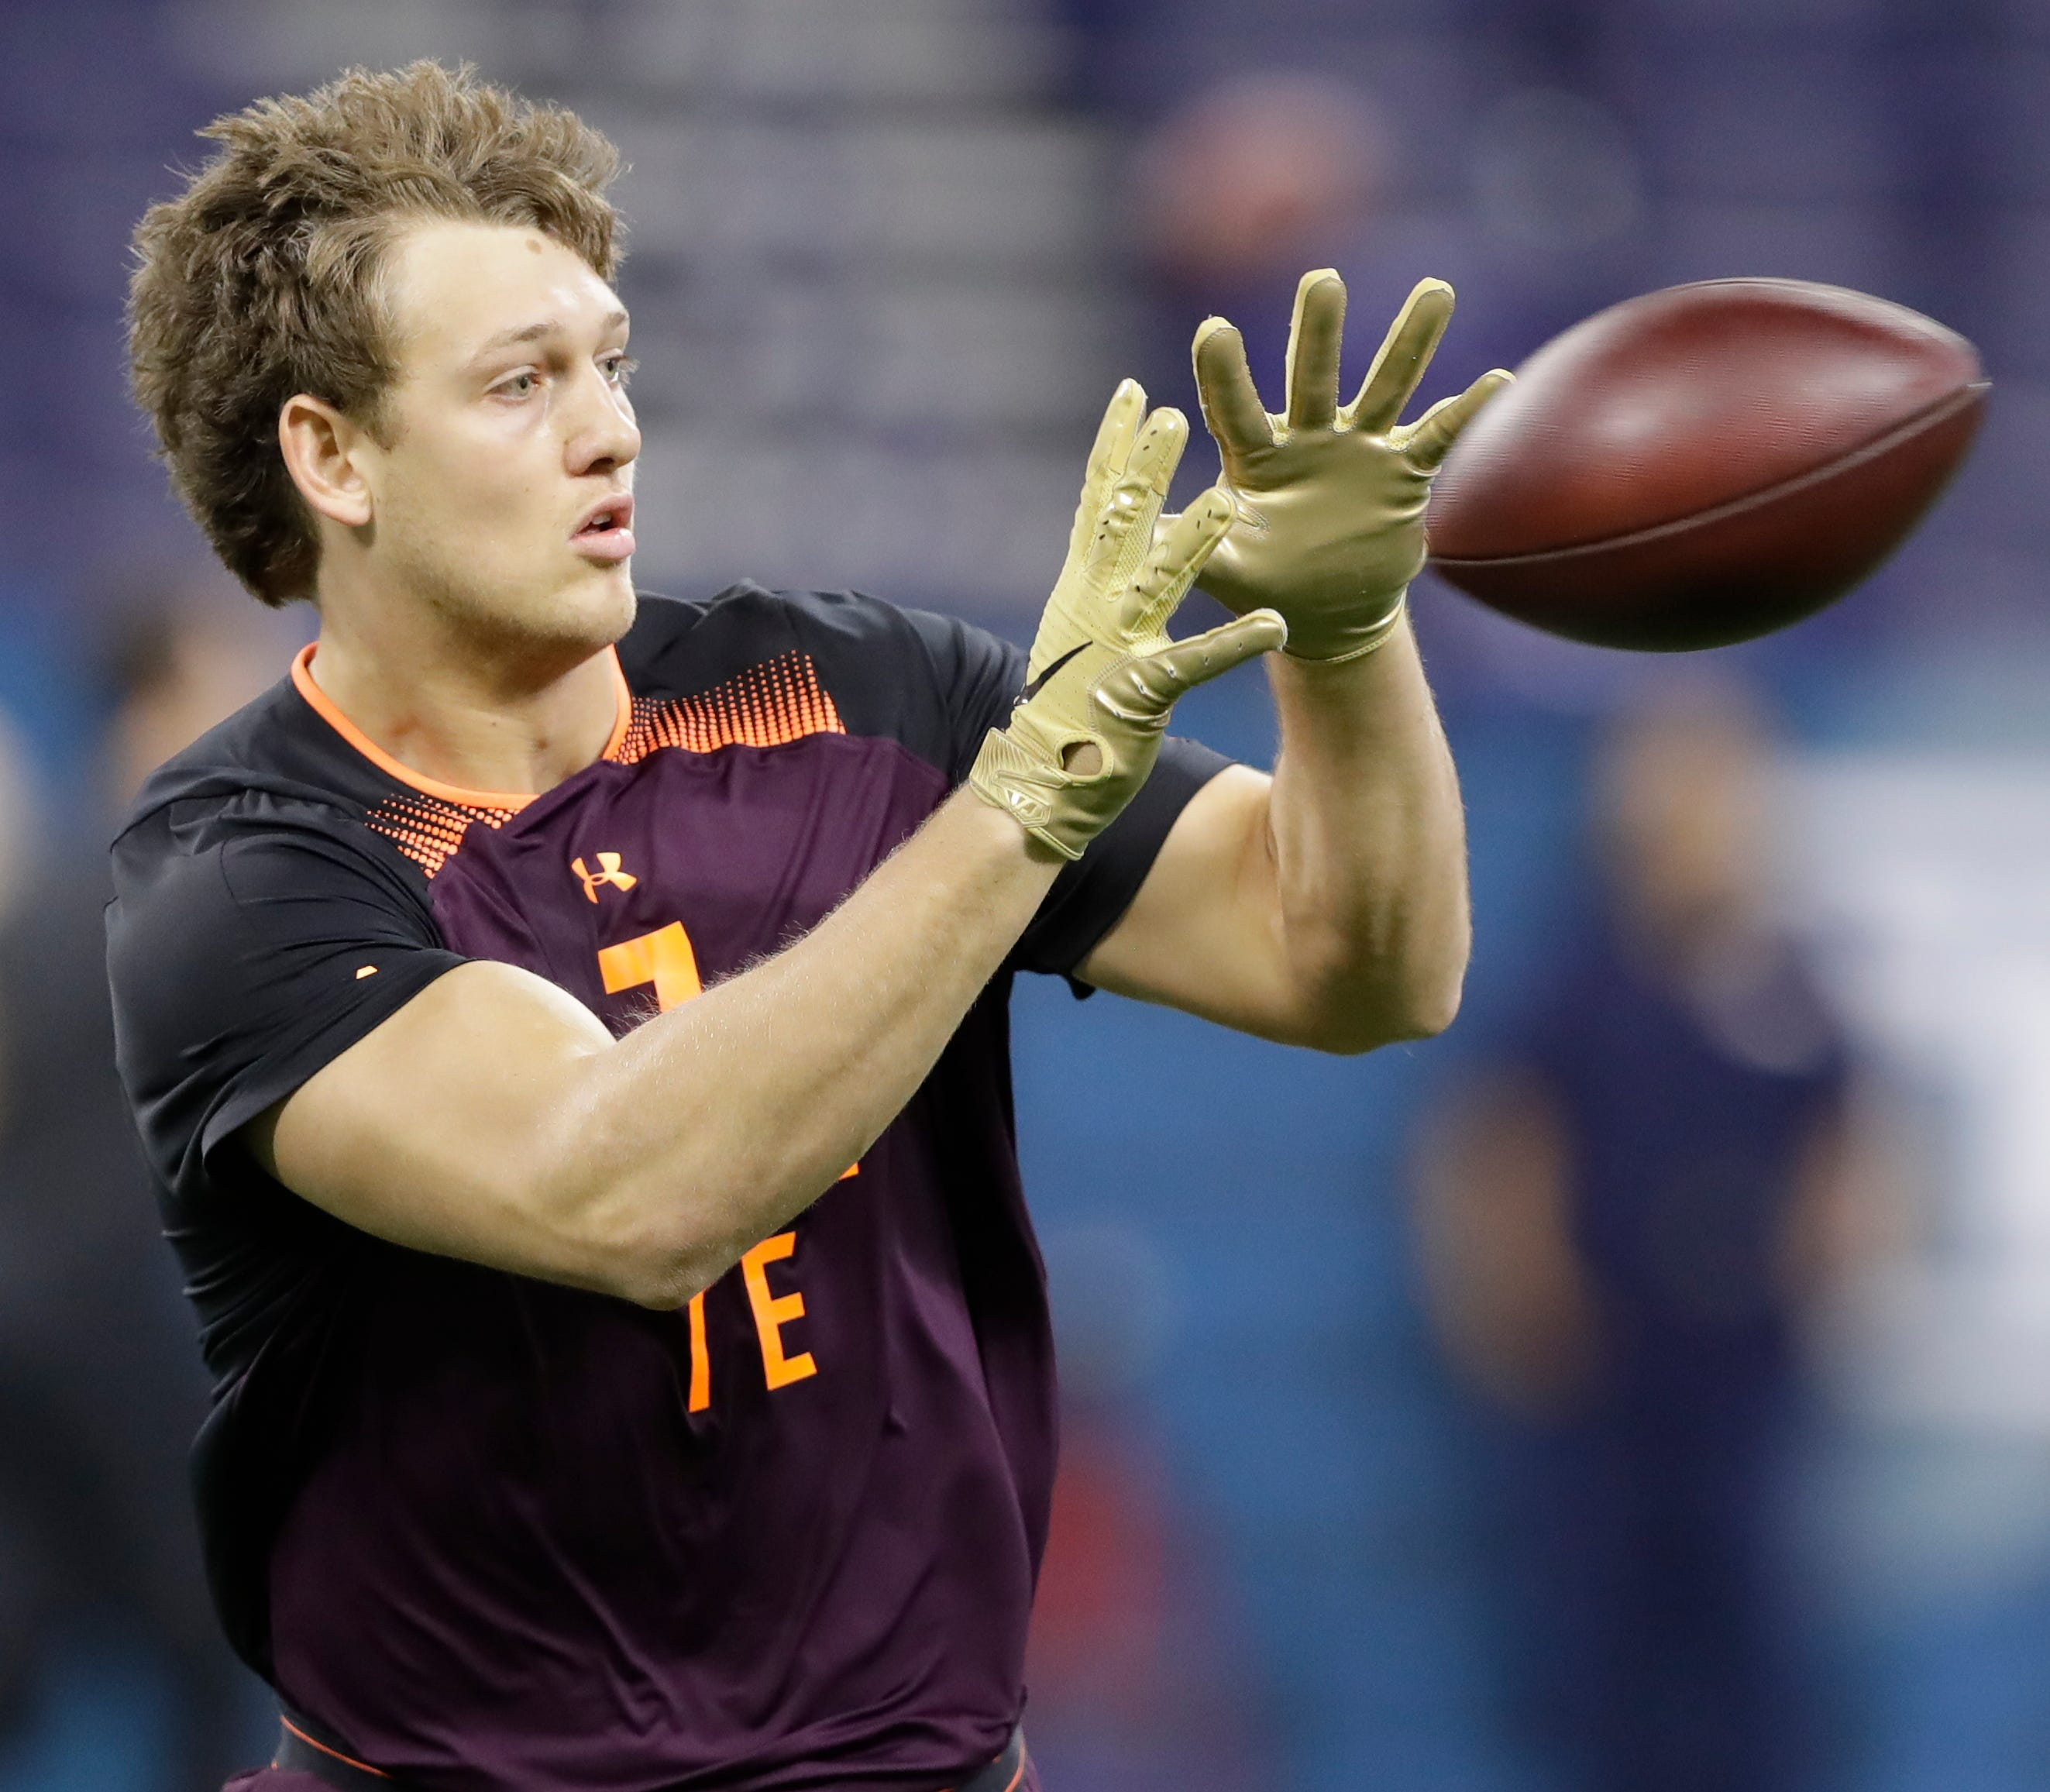 Former Iowa tight end T.J. Hockenson snares a pass during drills at the NFL Scouting Combine in Indianapolis on Saturday.